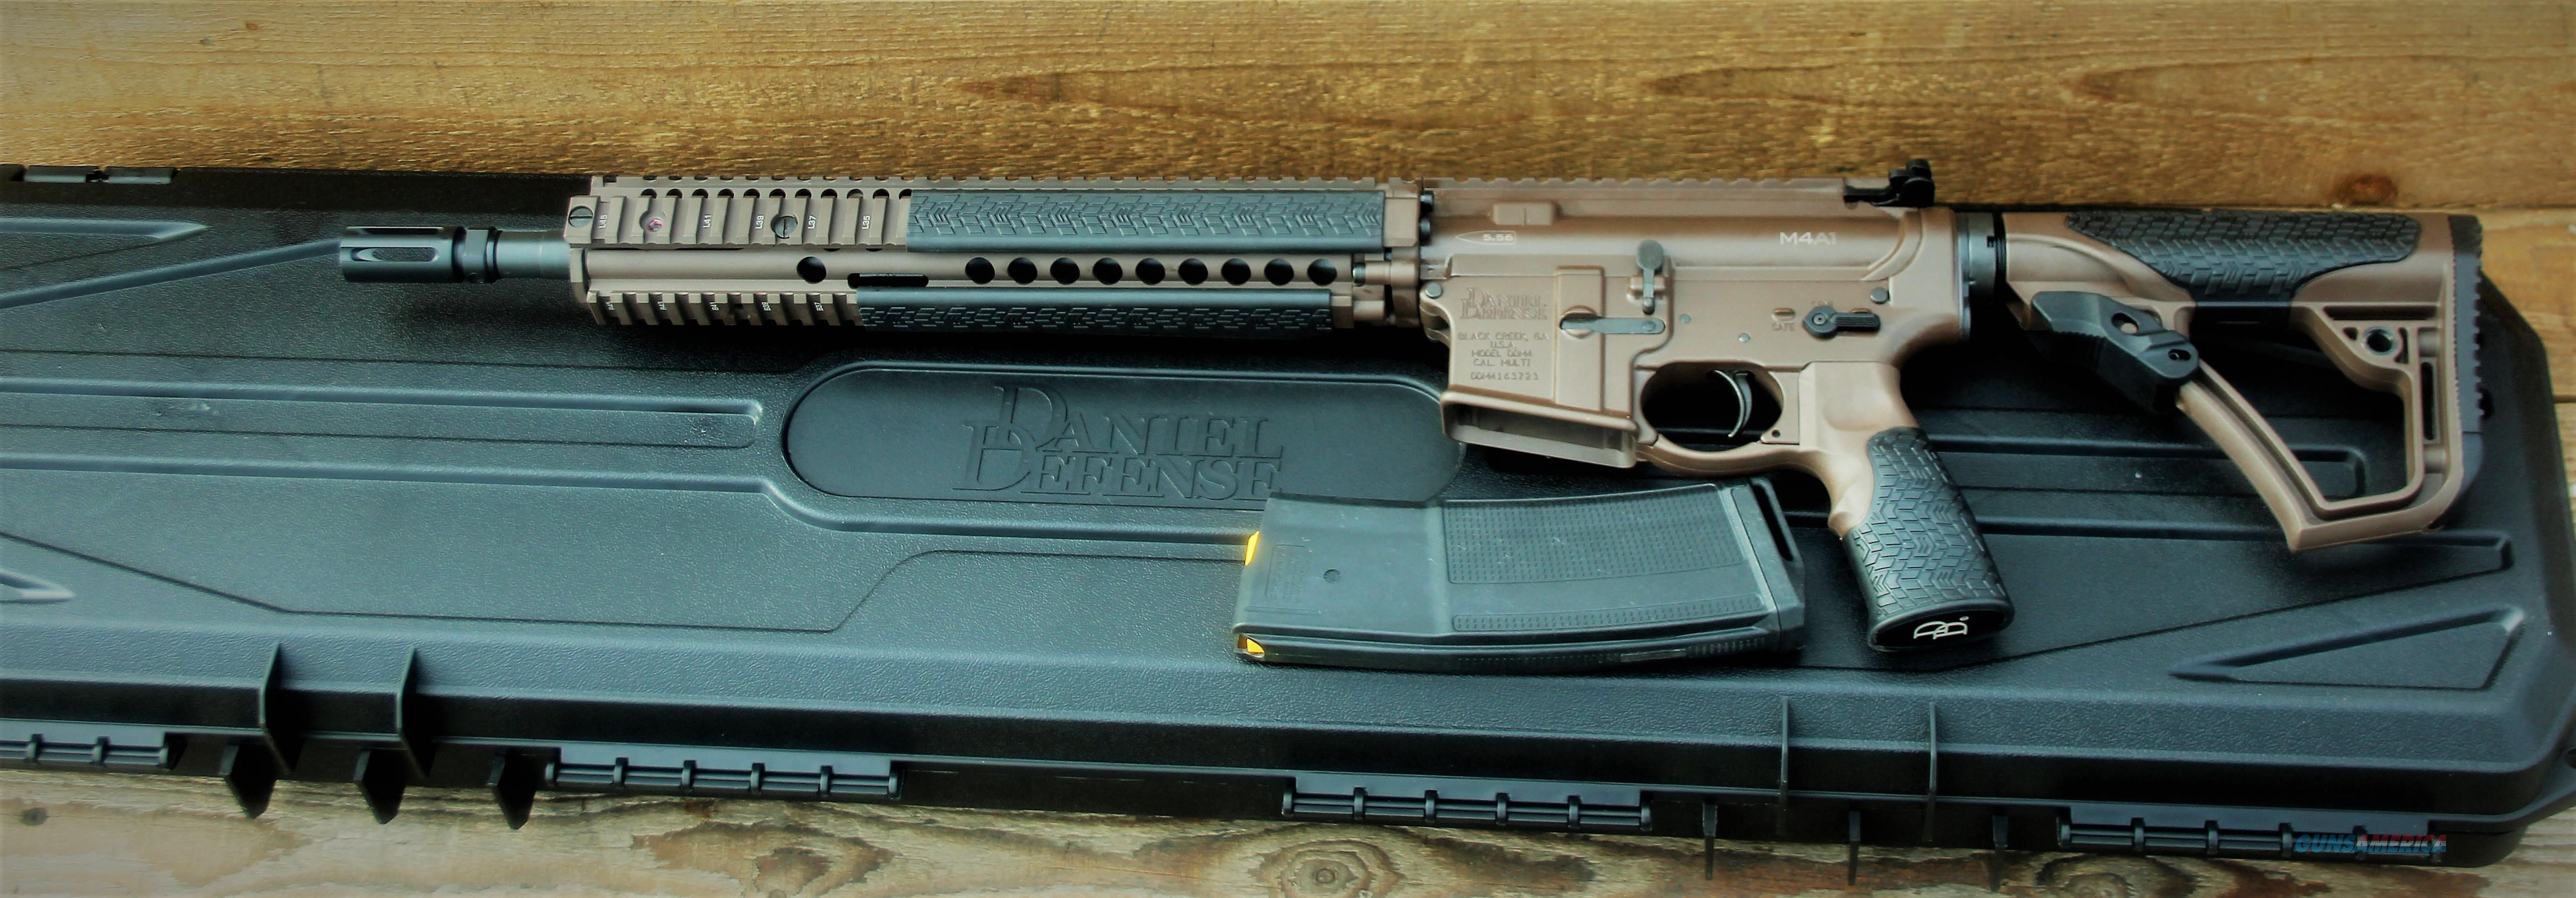 EZ PAY $111 Daniel Defense M4A1 Lightweight carbine collapsible stock Mobile M4 in 5.56 NATO Rail Interface System Special Operations Command Contract 32-round DDM4A1MSP  Guns > Rifles > Daniel Defense > Complete Rifles